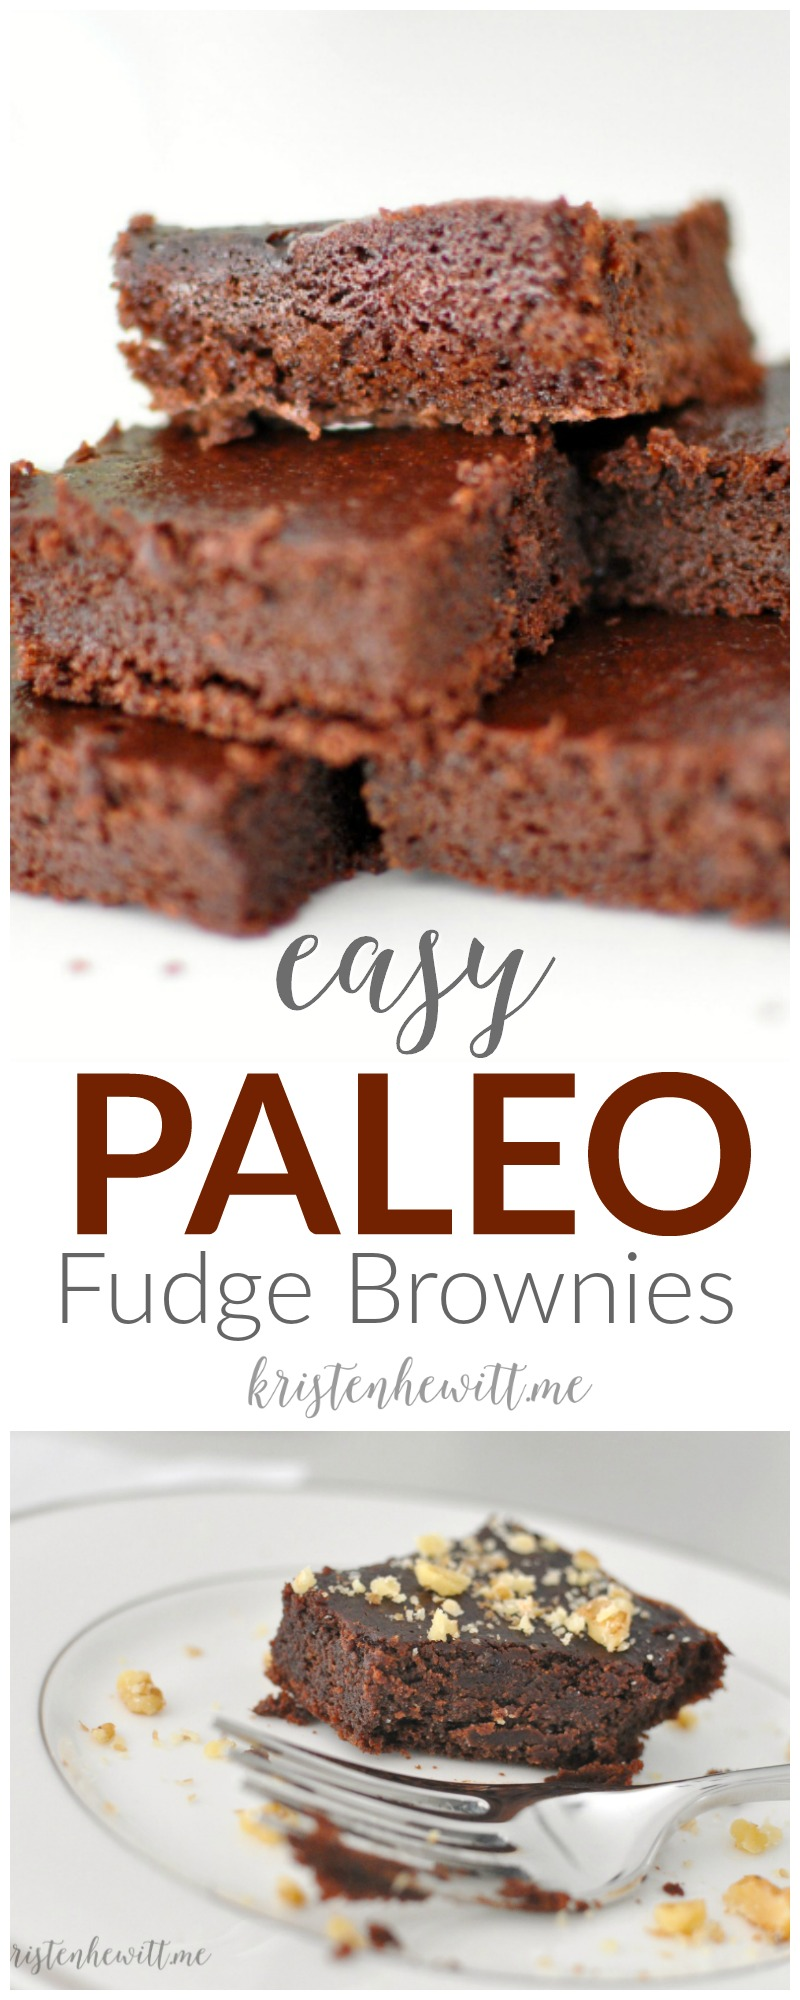 Finding sweet treats is hard when you're on the paleo diet. But don't despair, these easy paleo fudge brownies are easy, satisfying, and delicious!